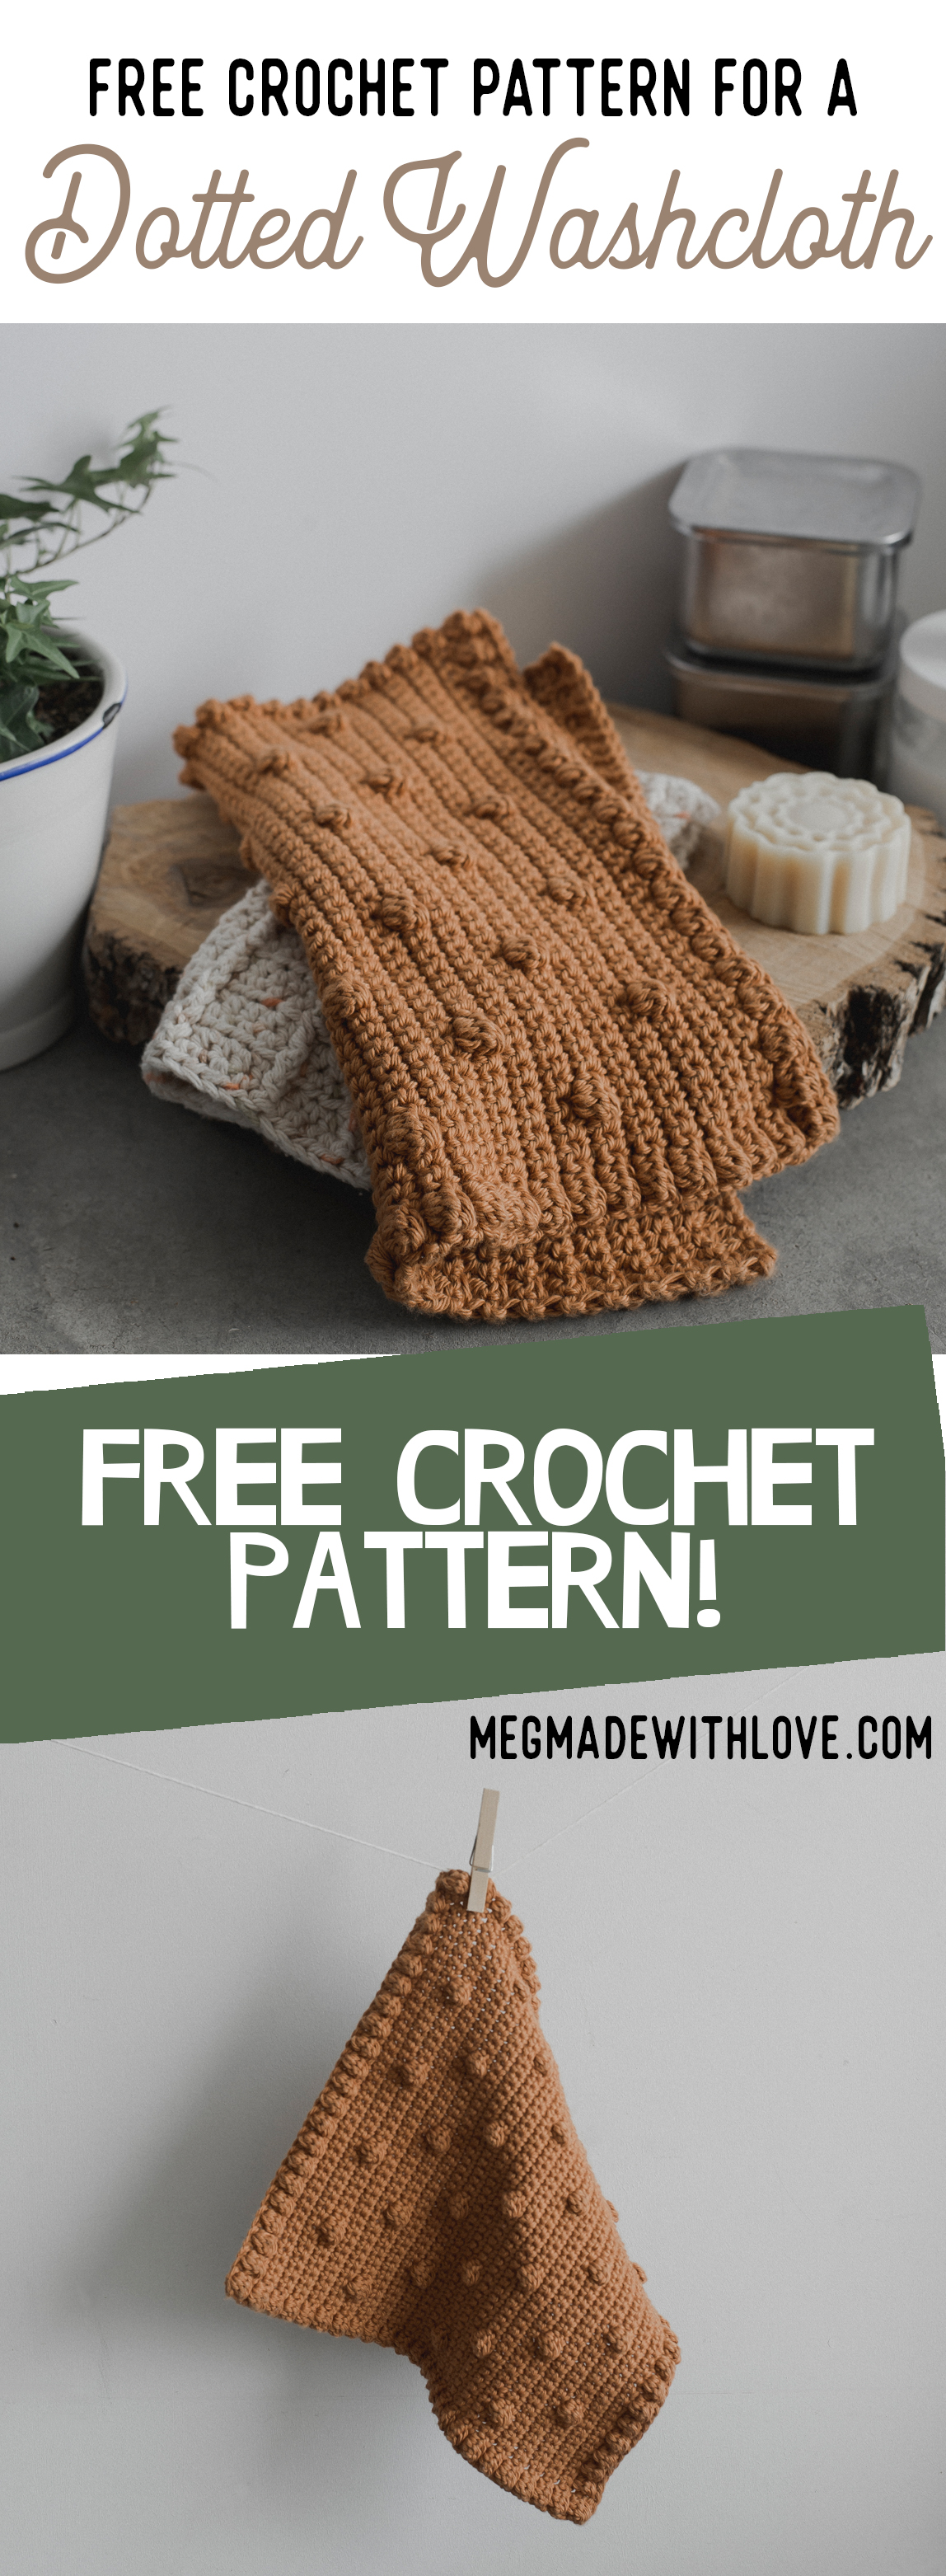 Free Crochet Pattern for a Rustic Dotted Washcloth - Megmade with Love